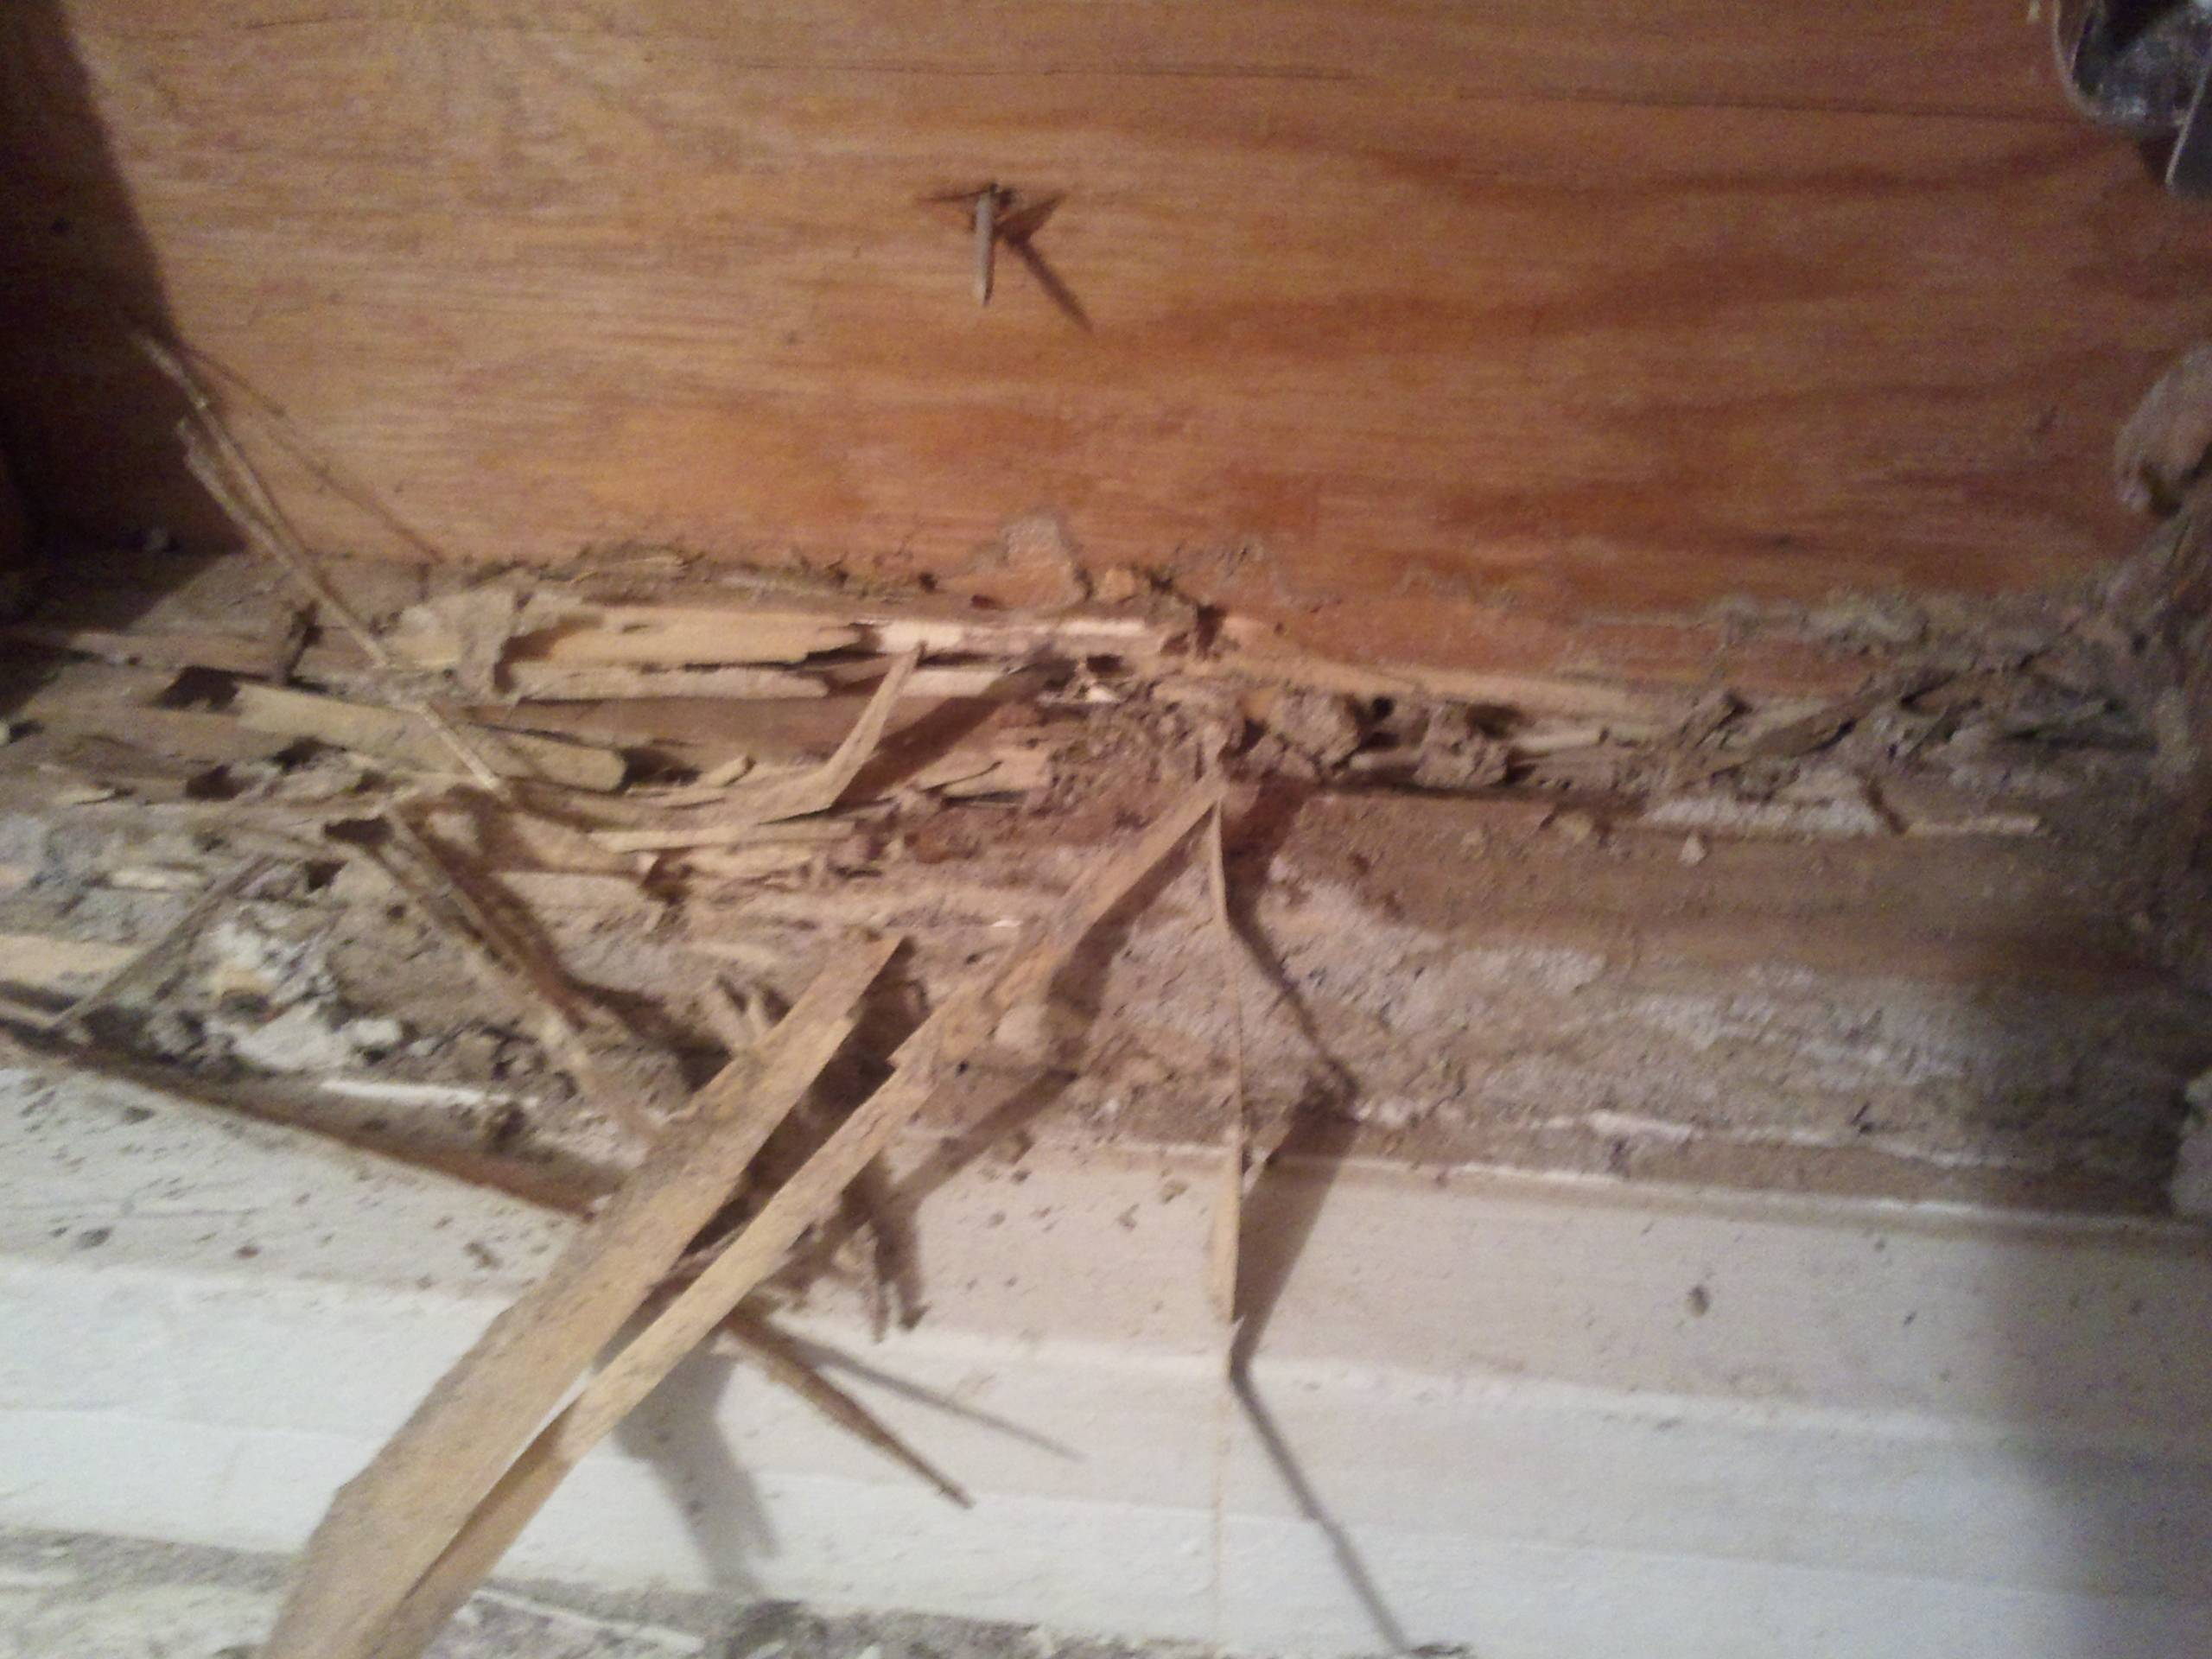 drywall  Is this termite damage and if so how do I repair